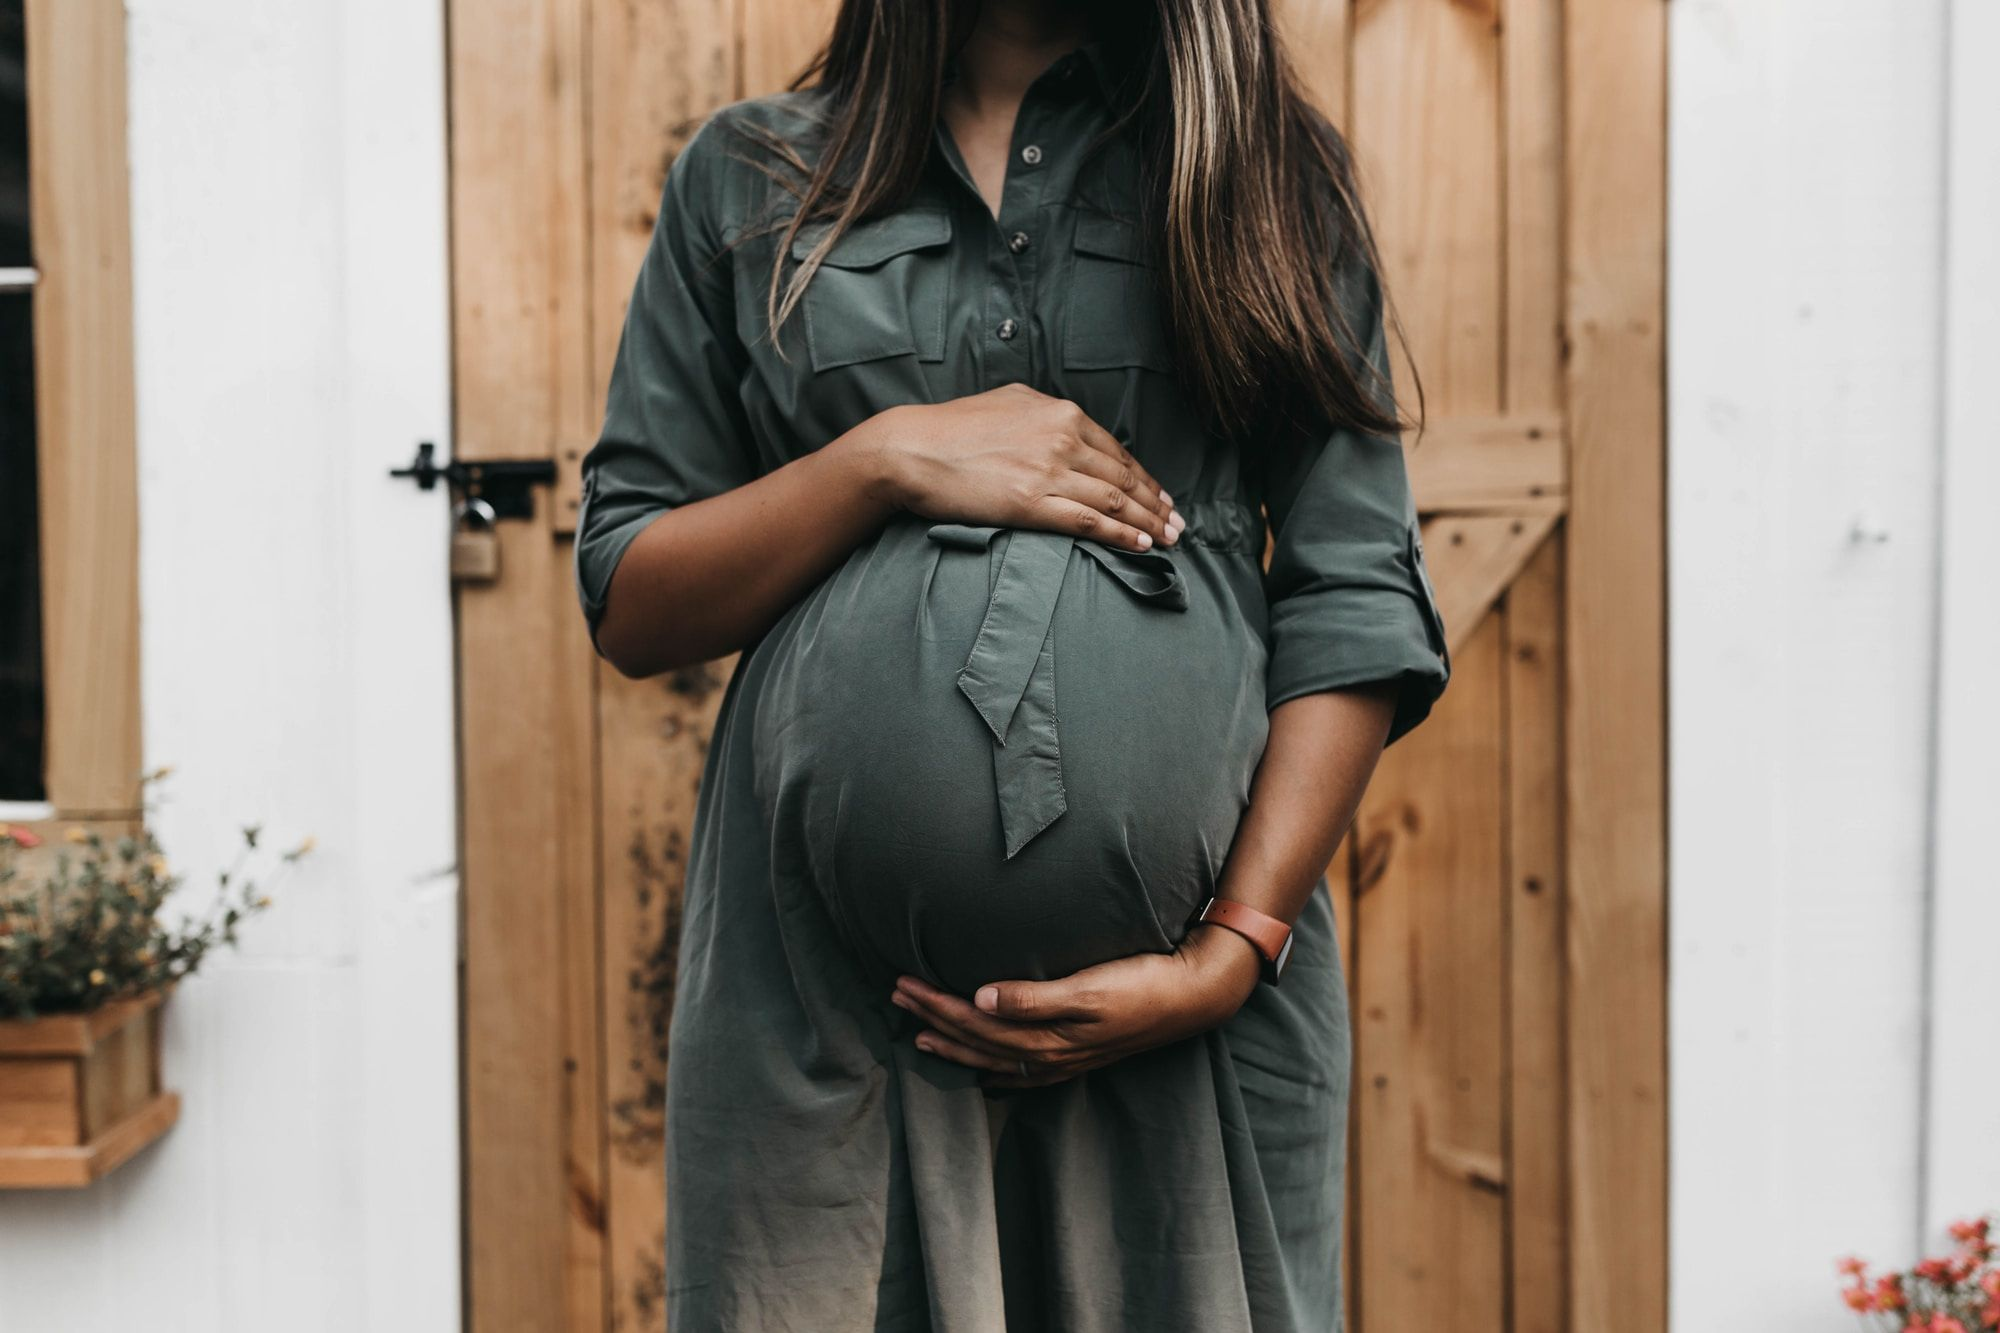 Image of a woman standing in front of a wooden door, her arms cradling her pregnant belly.